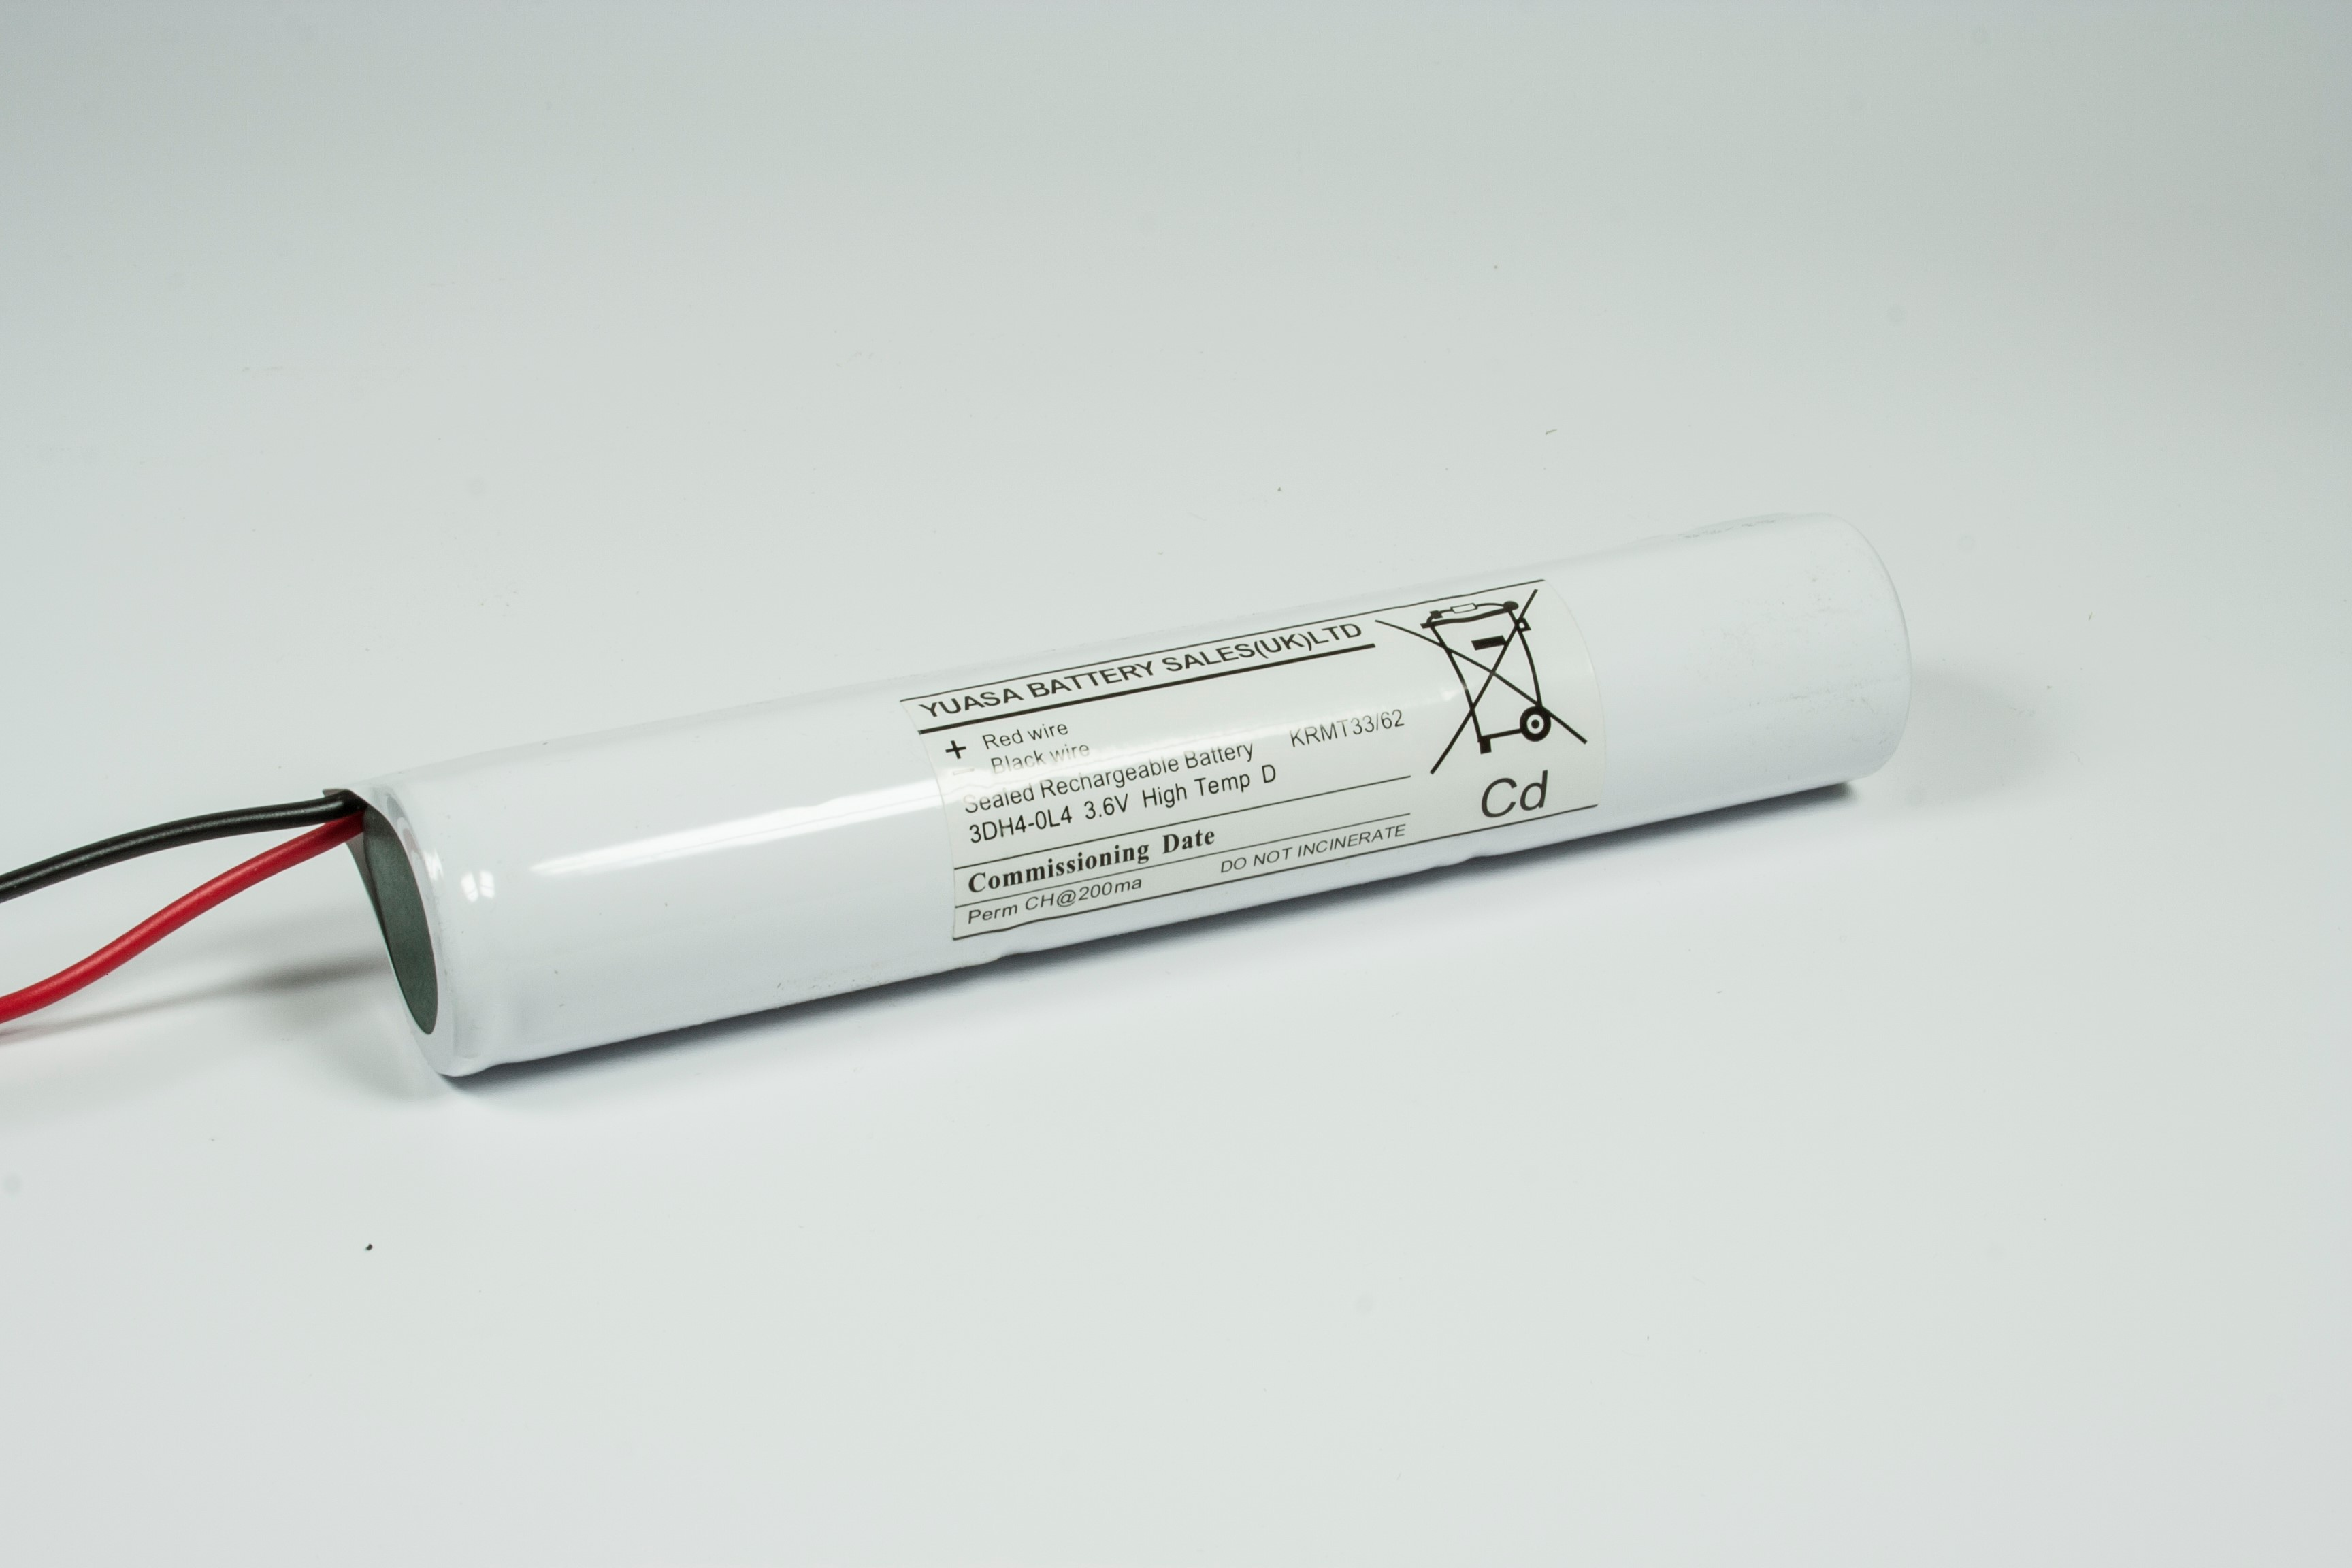 BATTERY EMERGENCY 3LS/BATT 3 CELL STICK